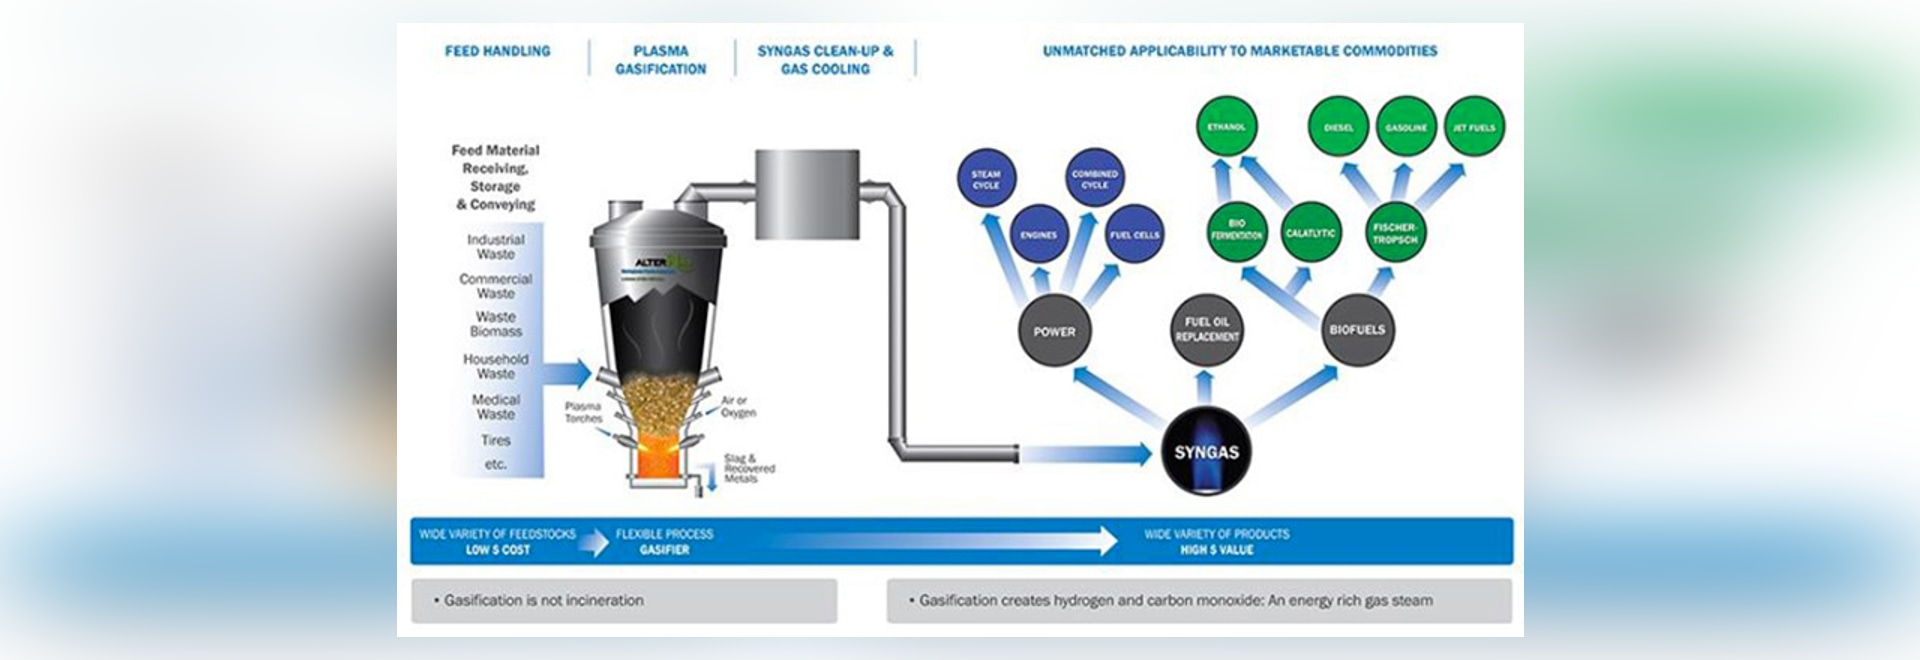 WASTE TO ENERGY FACILITY BY AIR PRODUCTS